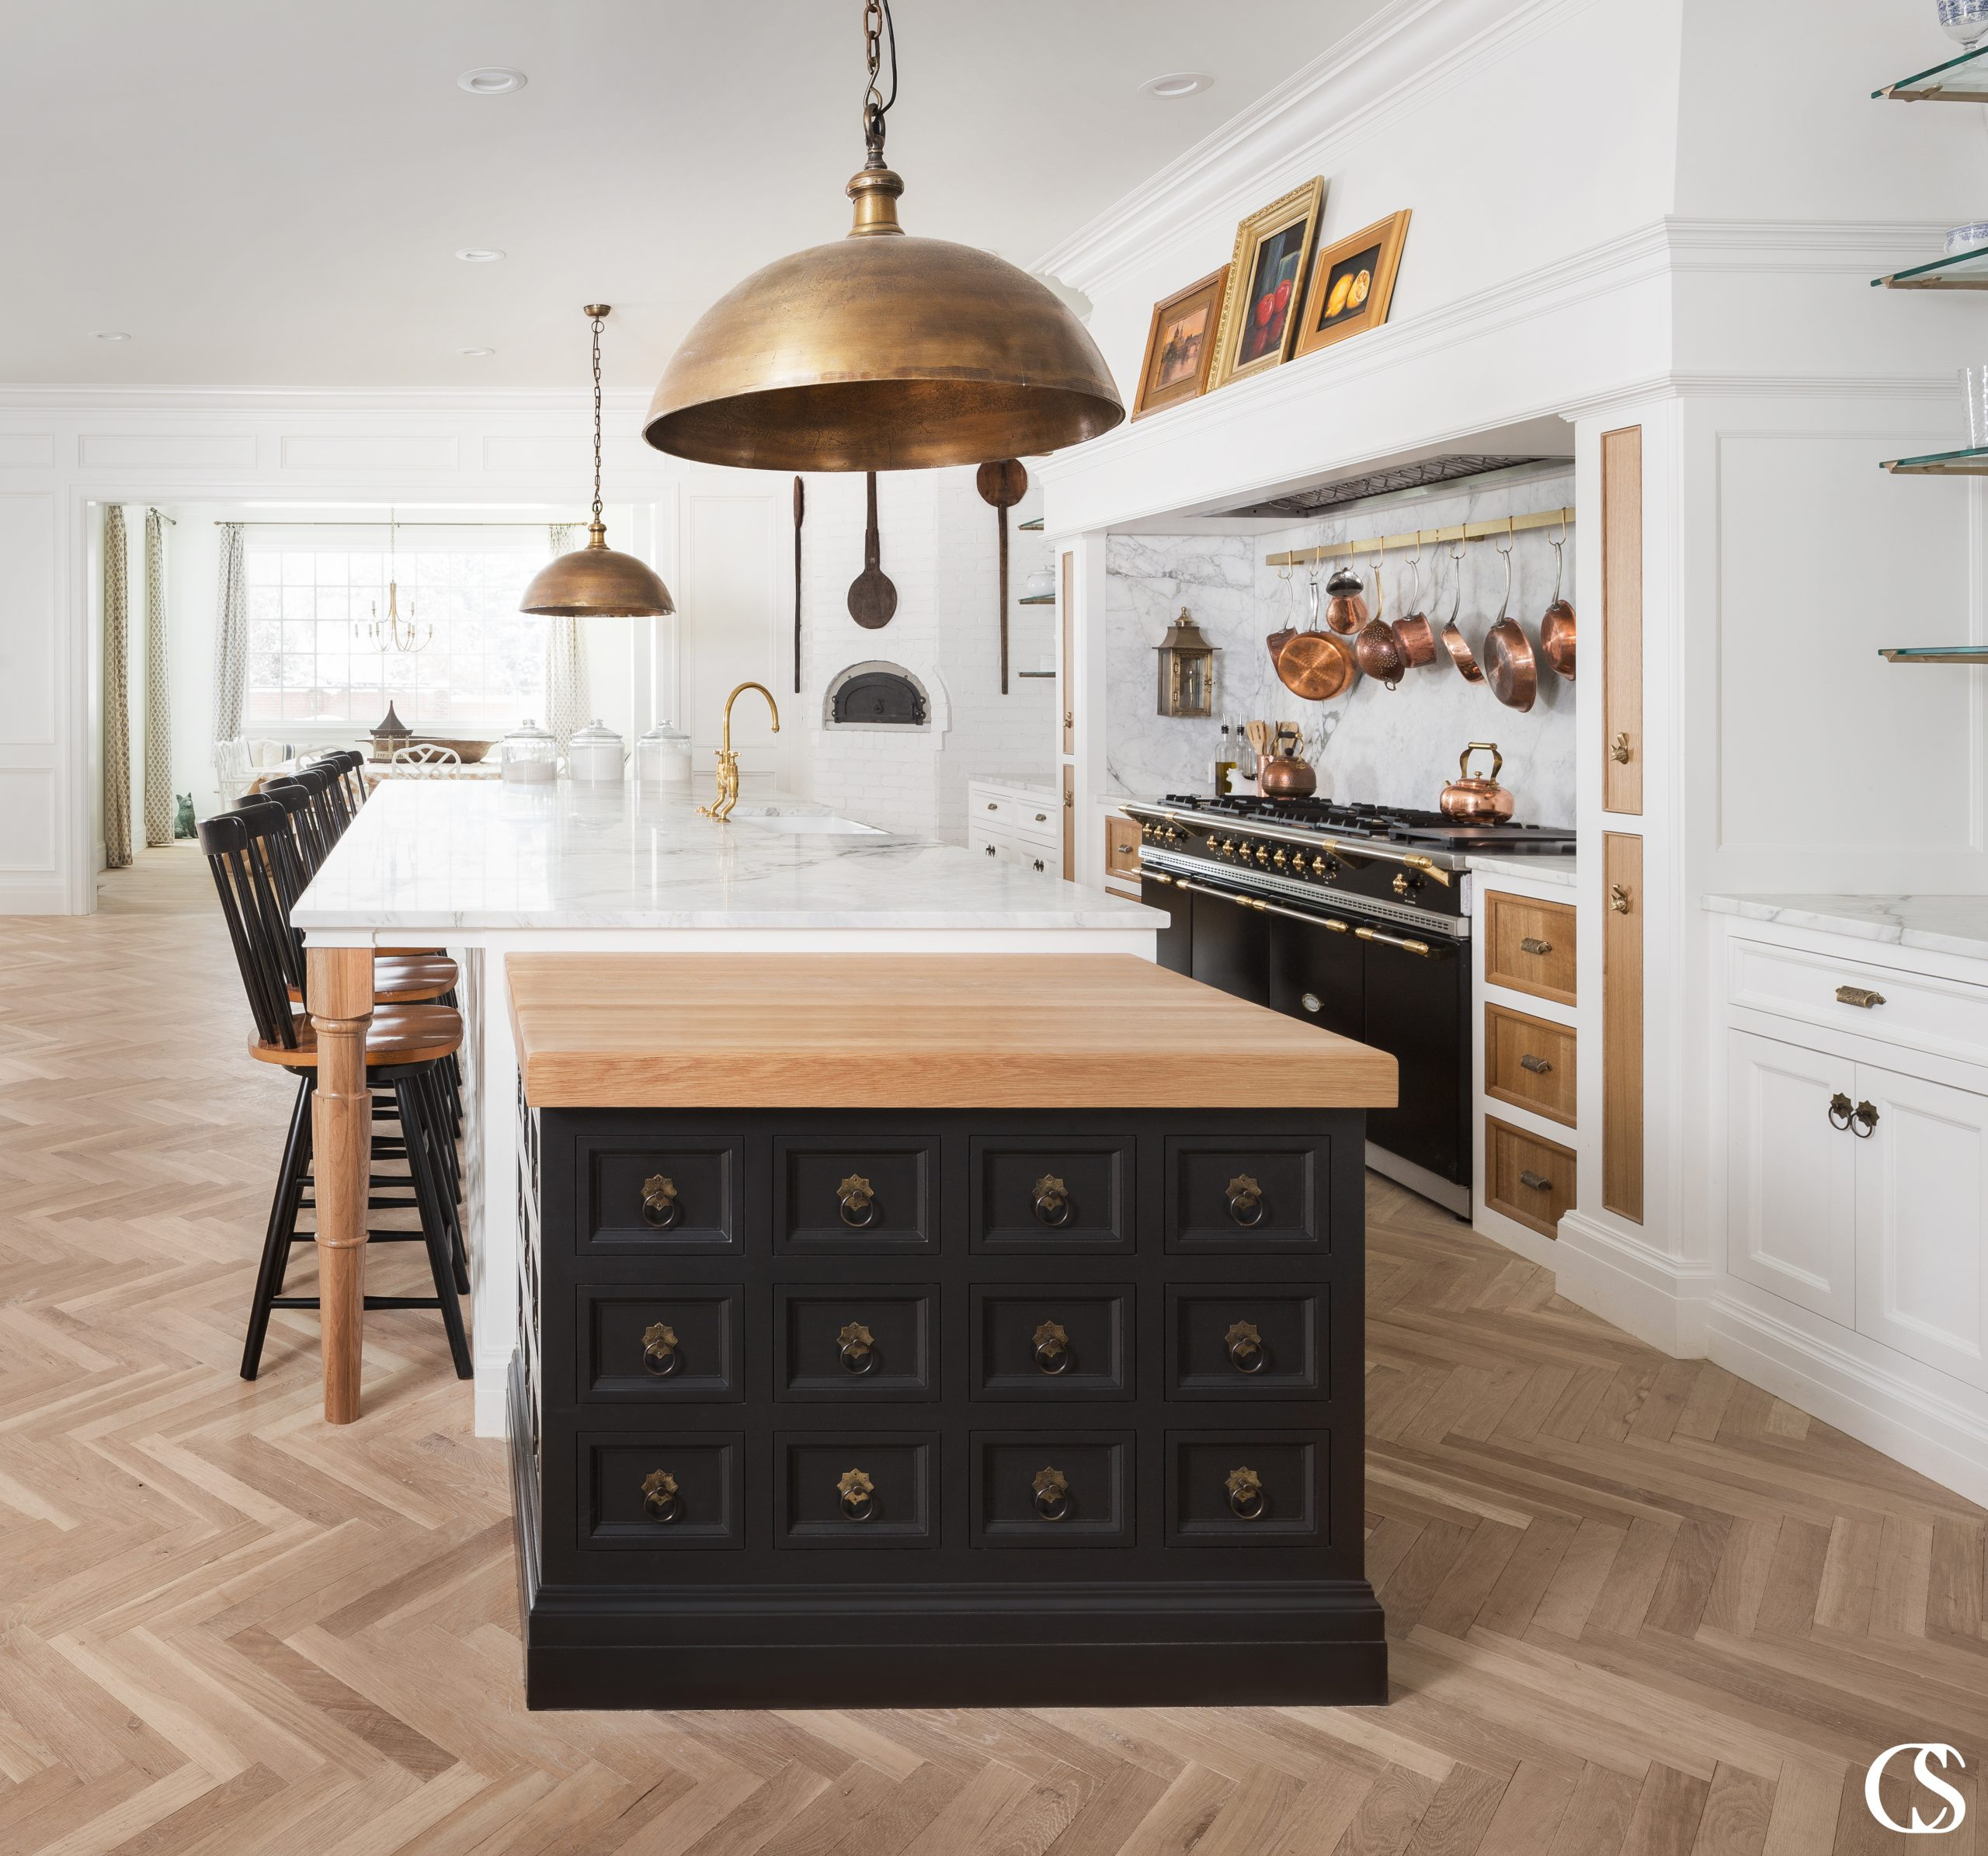 Beautiful custom black kitchen cabinets can have a powerful impact on your home. This unique kitchen island design combines multiple colors, materials, and global influence to reflect a beautifully eclectic style.